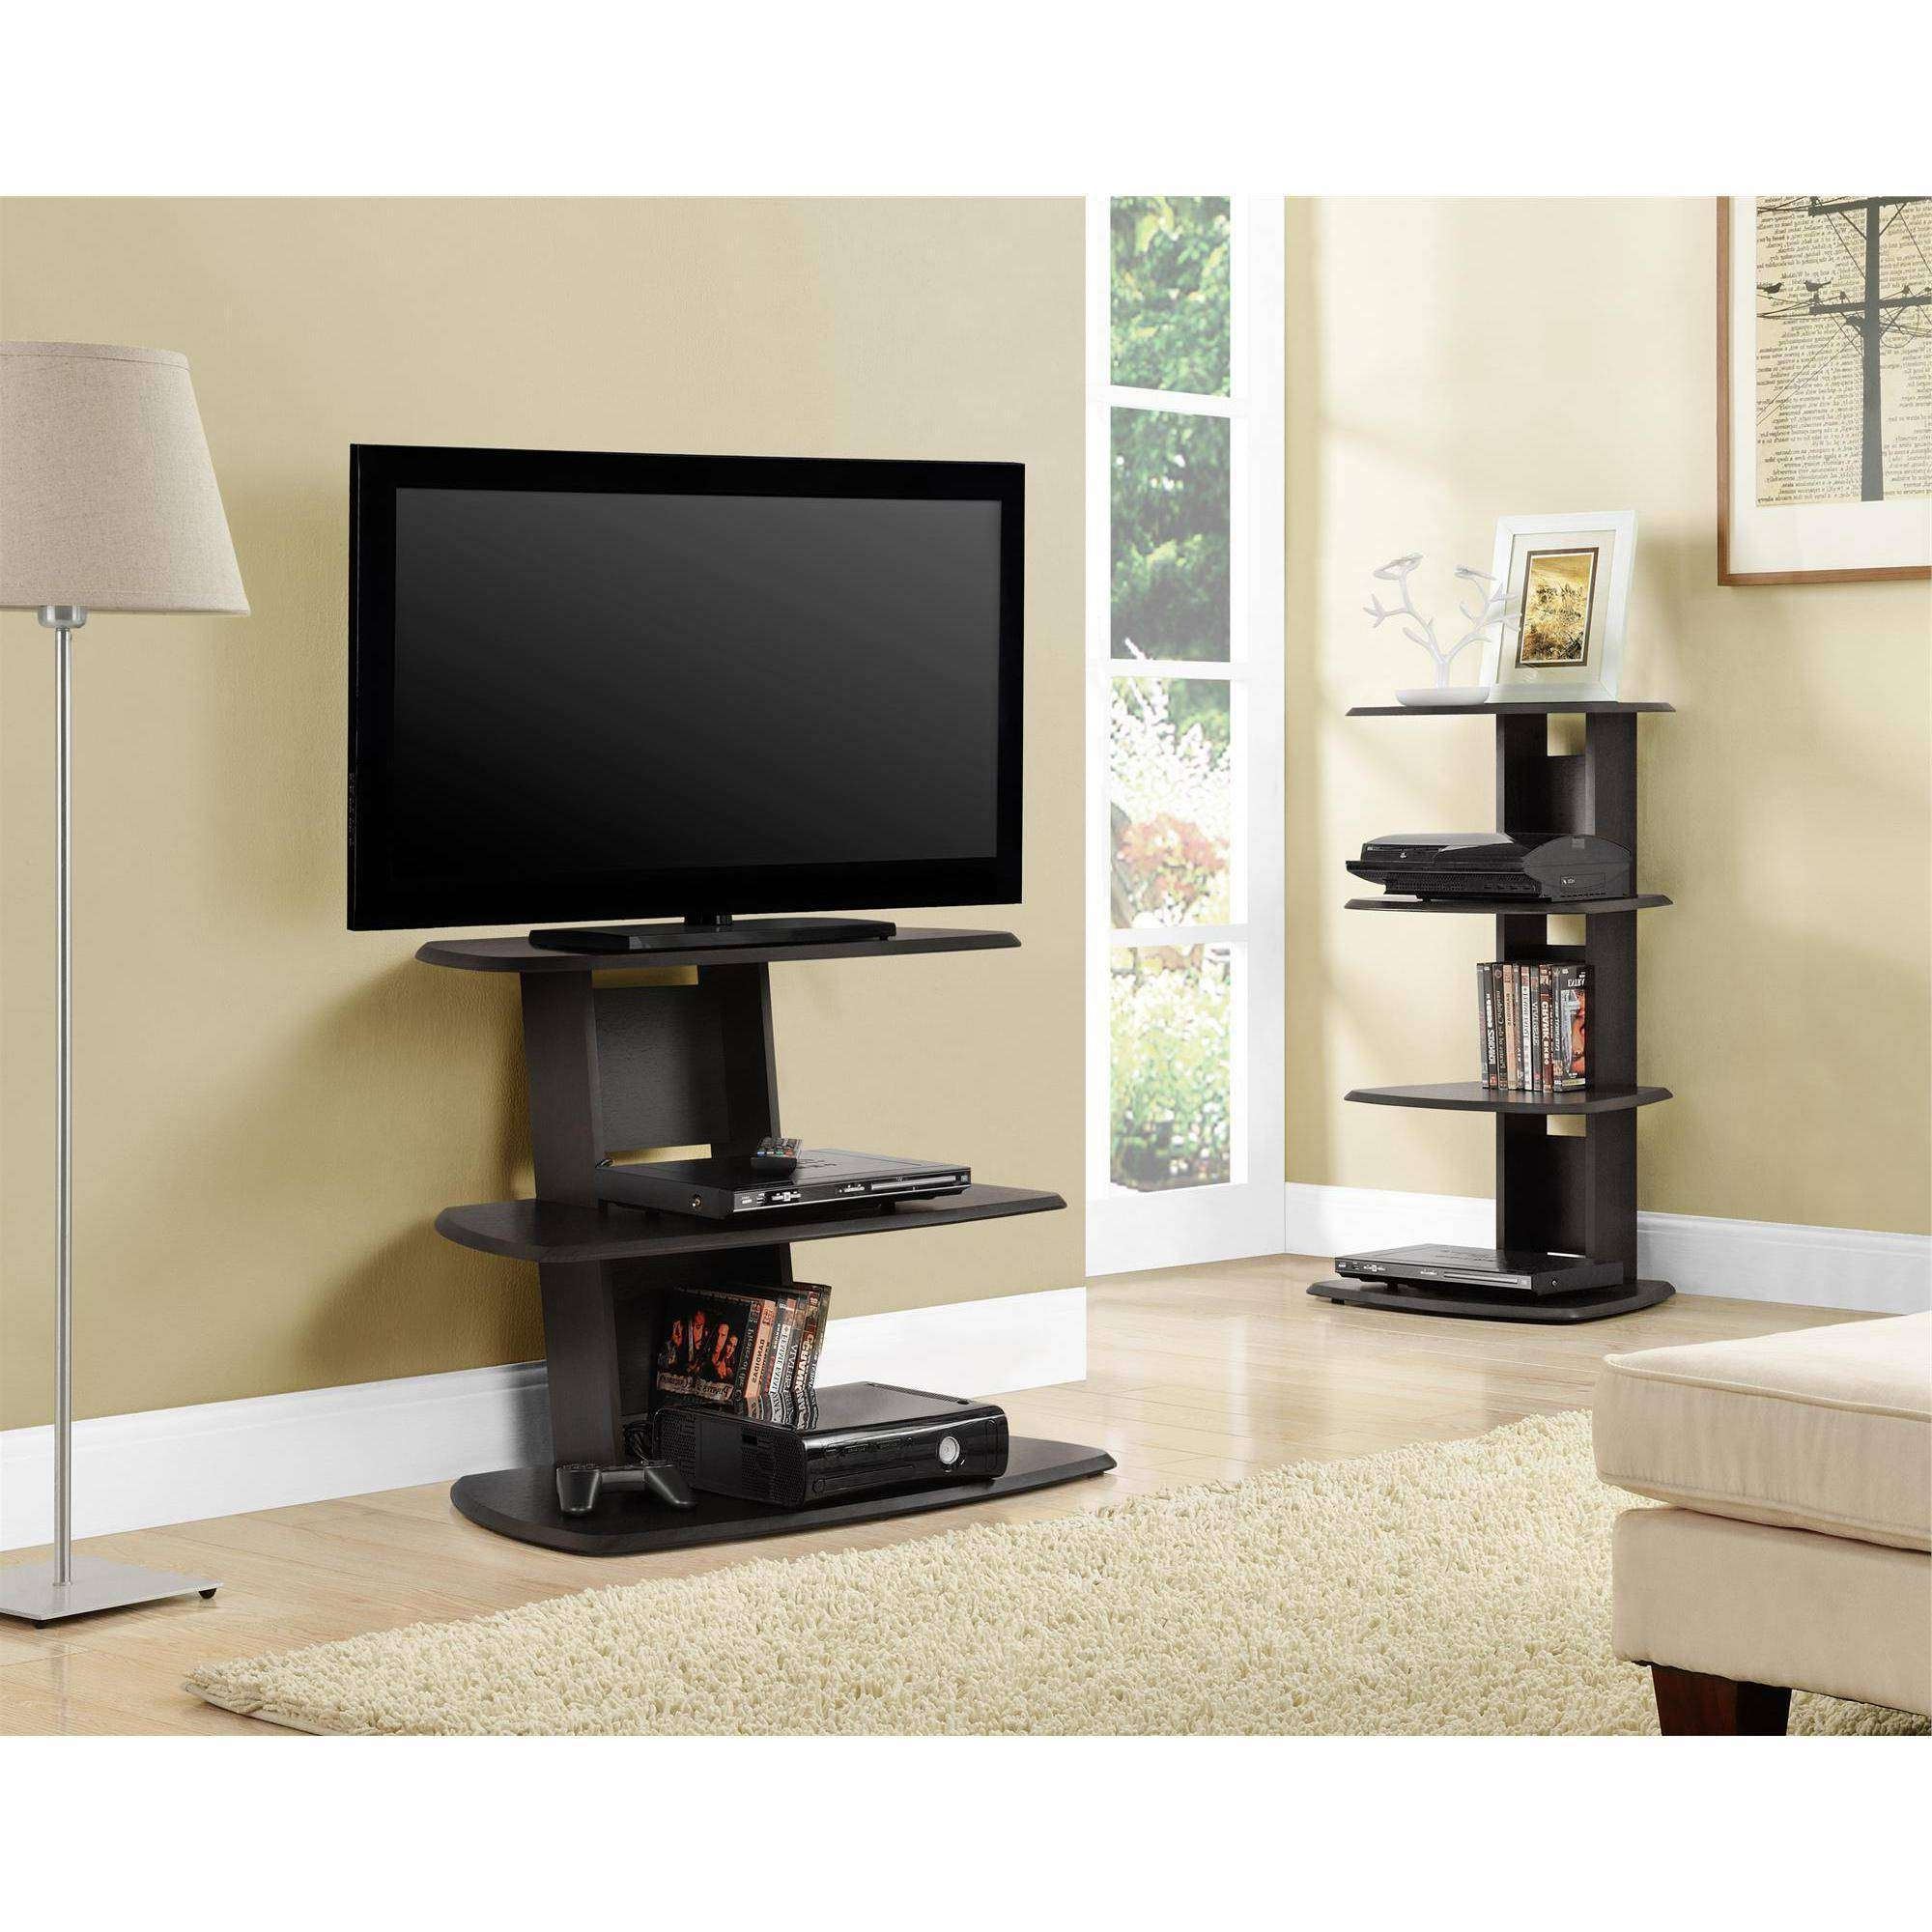 Tv Stands For 32 Inch Tv Intended For 24 Inch Tv Stands (View 2 of 15)